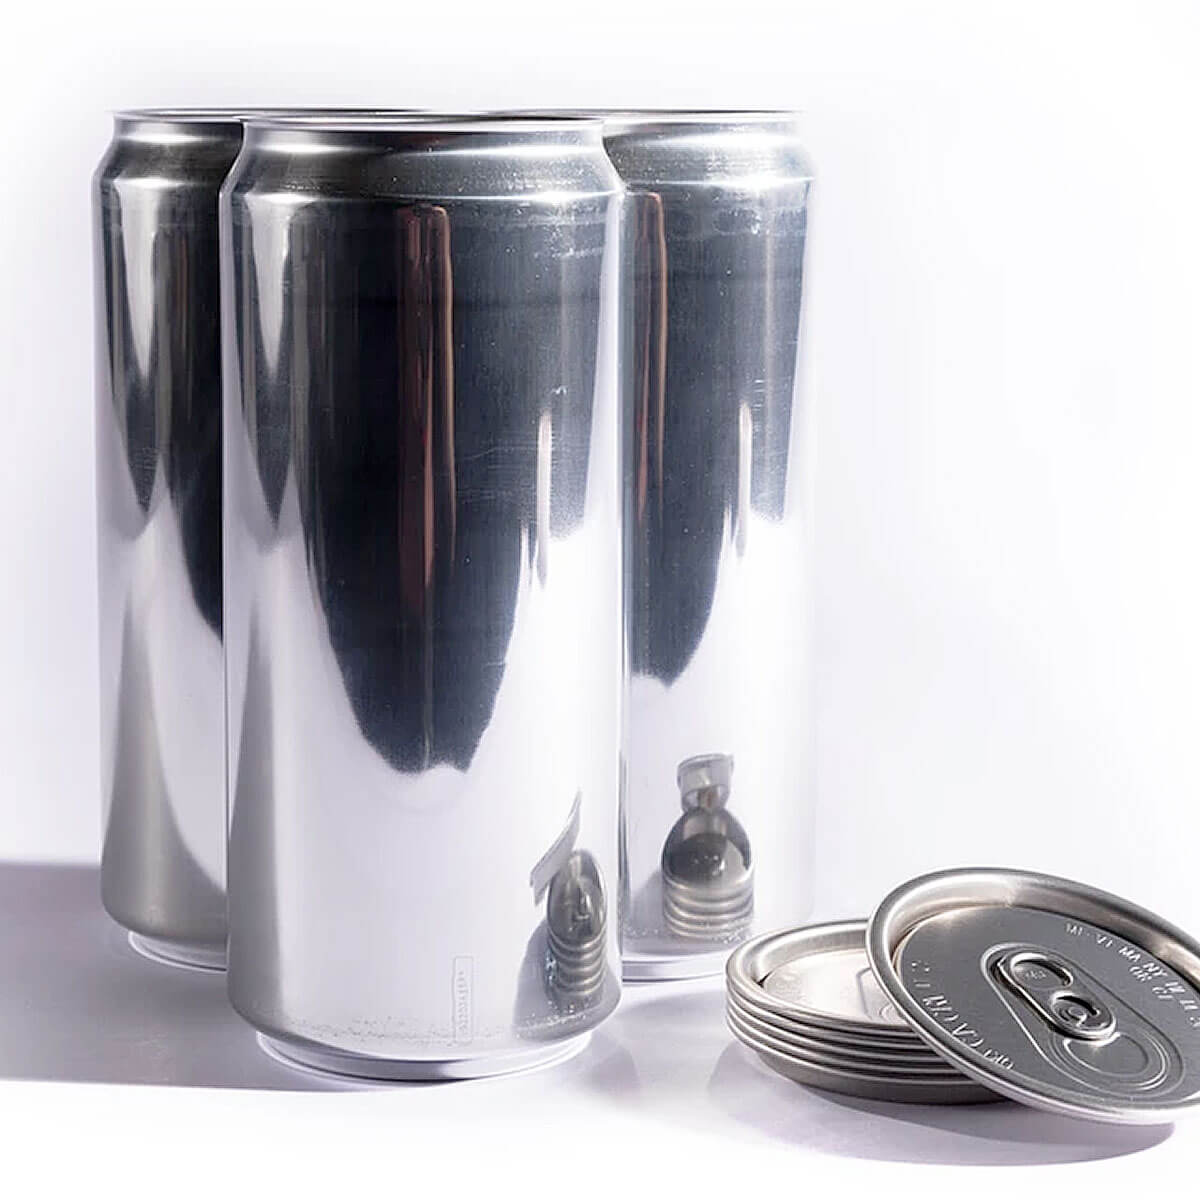 A trio of aluminum 32 oz. crowler cans produced by the Ball Corporation